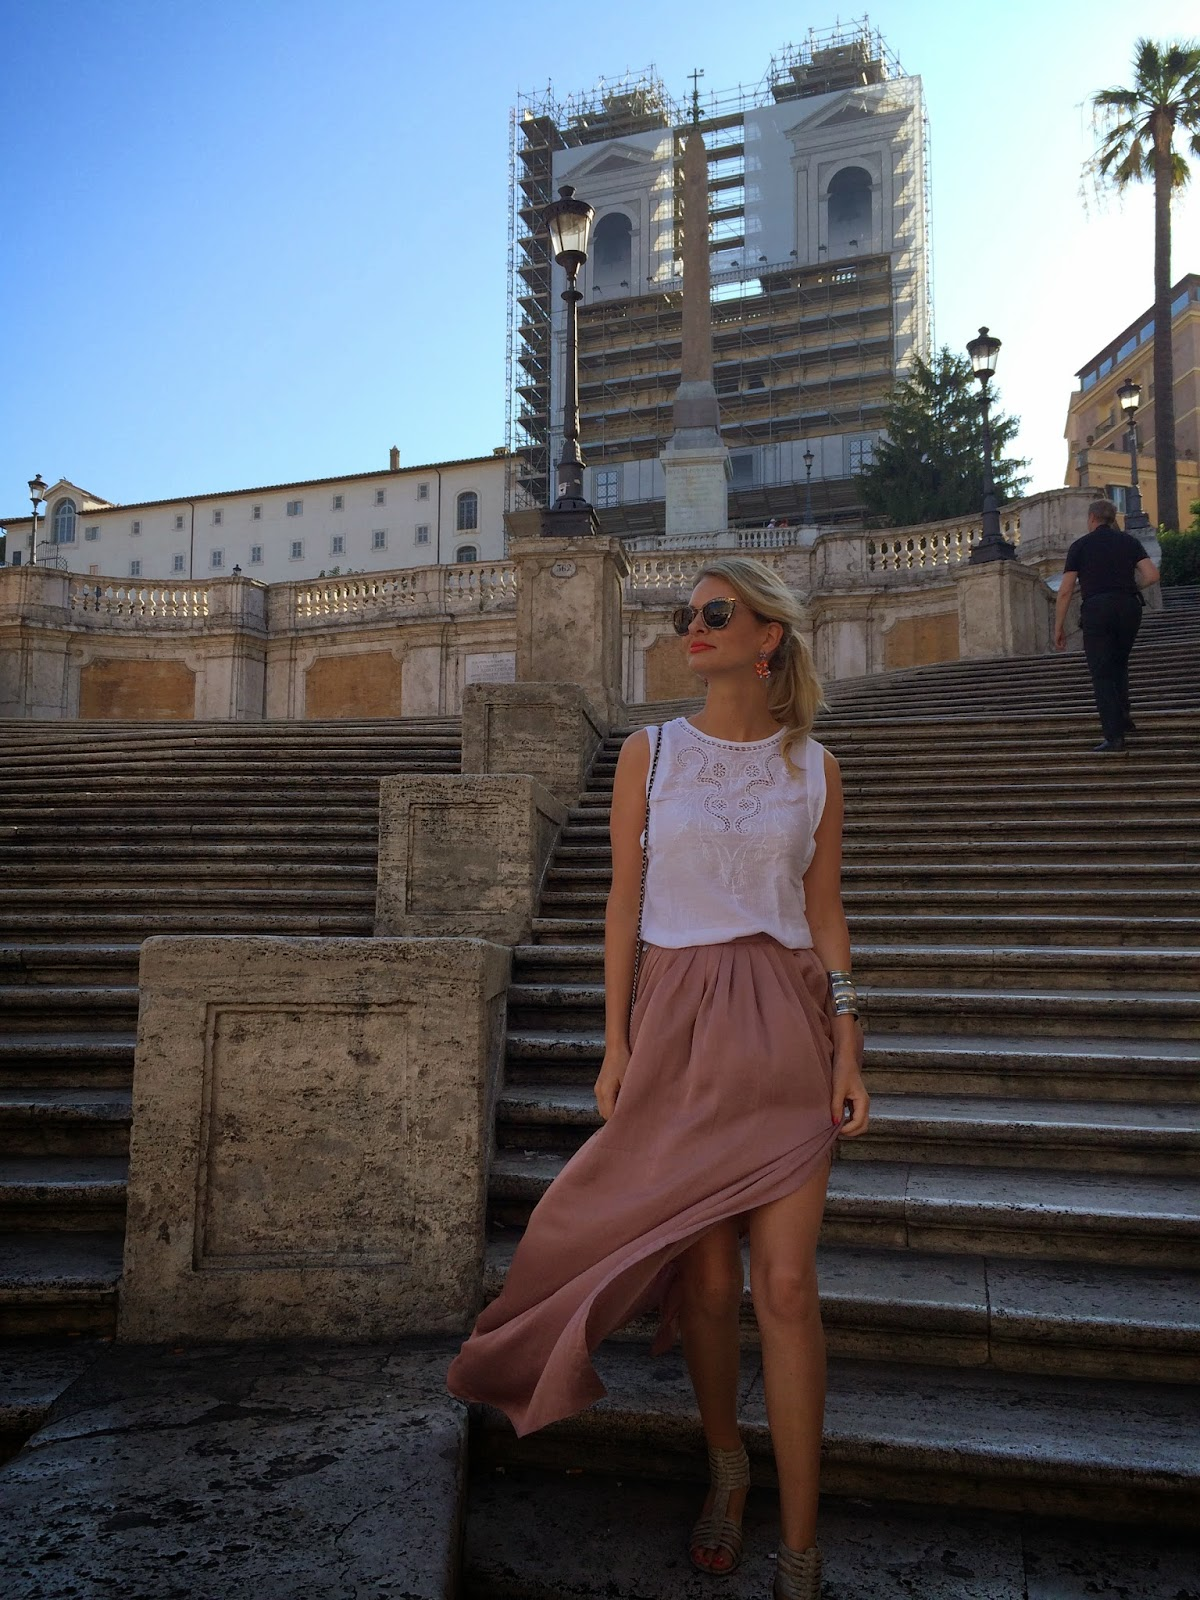 spanish steps, piazza di spagna, asos soft split maxi skirt, spanish place, maxi skirt, asos, asos skirt, miu miu sunglasses, look book, outfit of the day, rome, summer holiday look, summer outfit